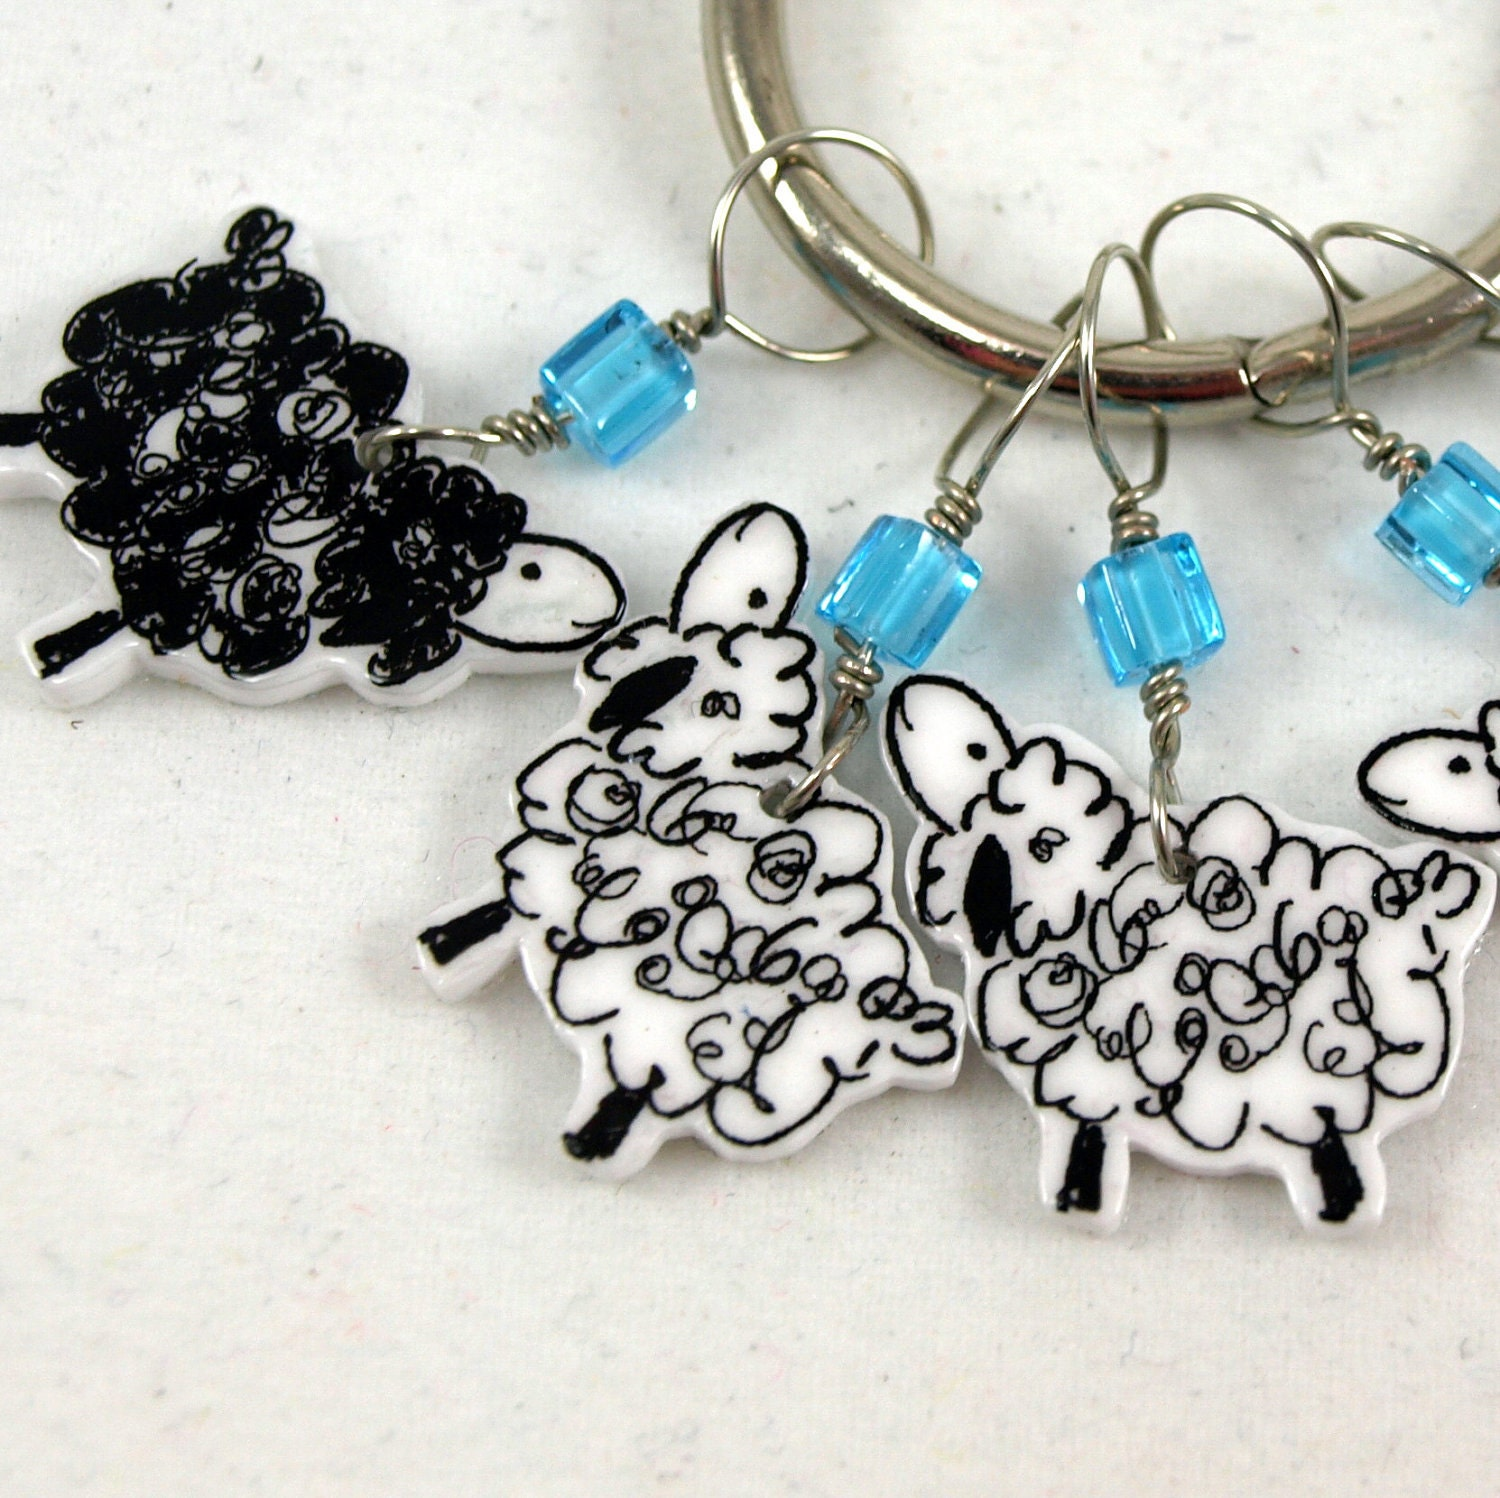 whimsical sheep stitch markers set of 5 snag free